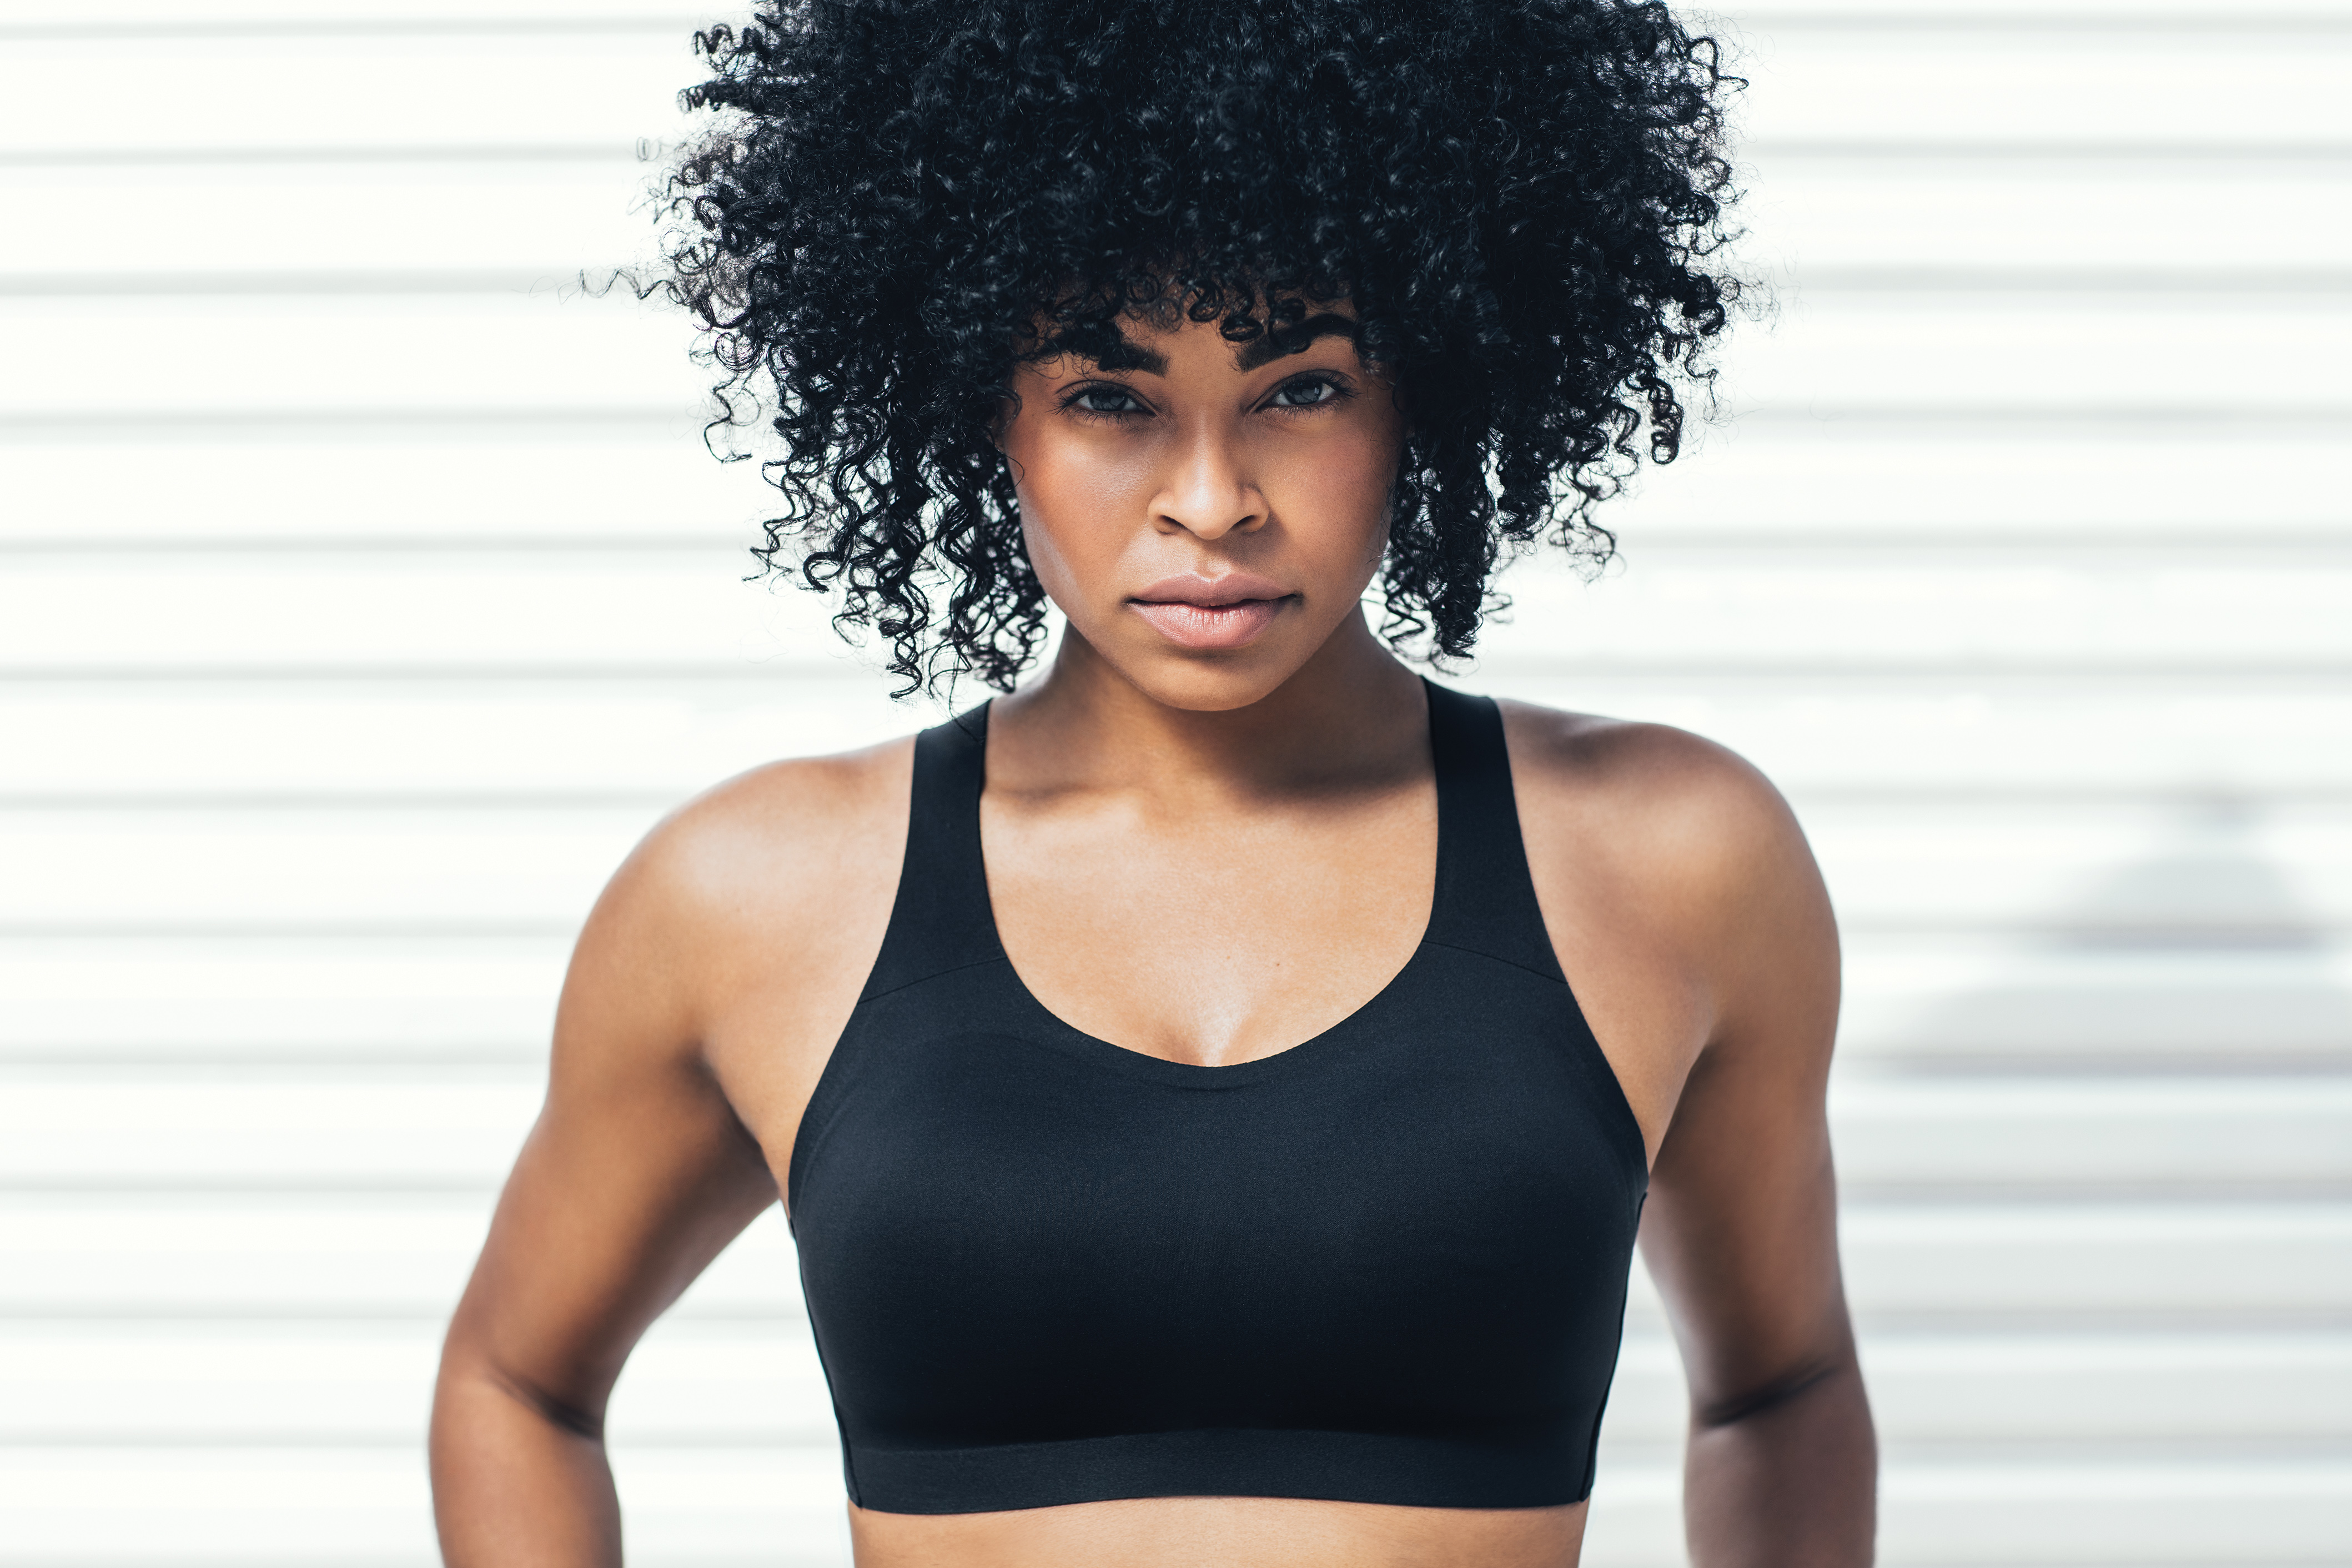 Lululemon plans to expand its selection of bras this year.